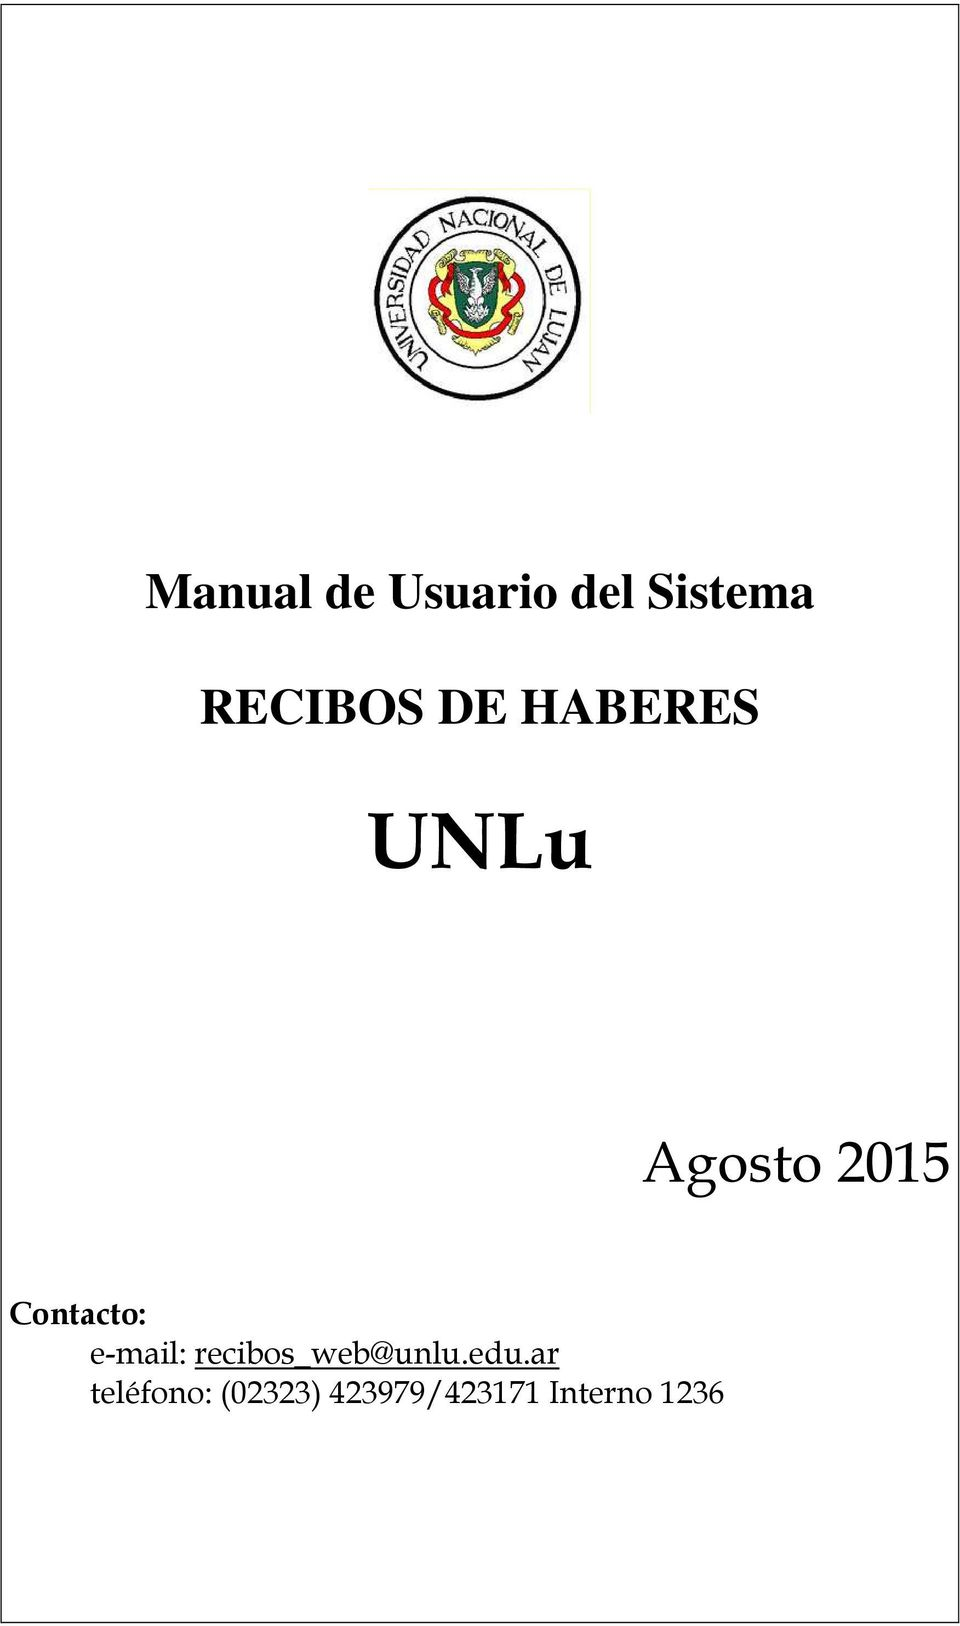 e-mail: recibos_web@unlu.edu.